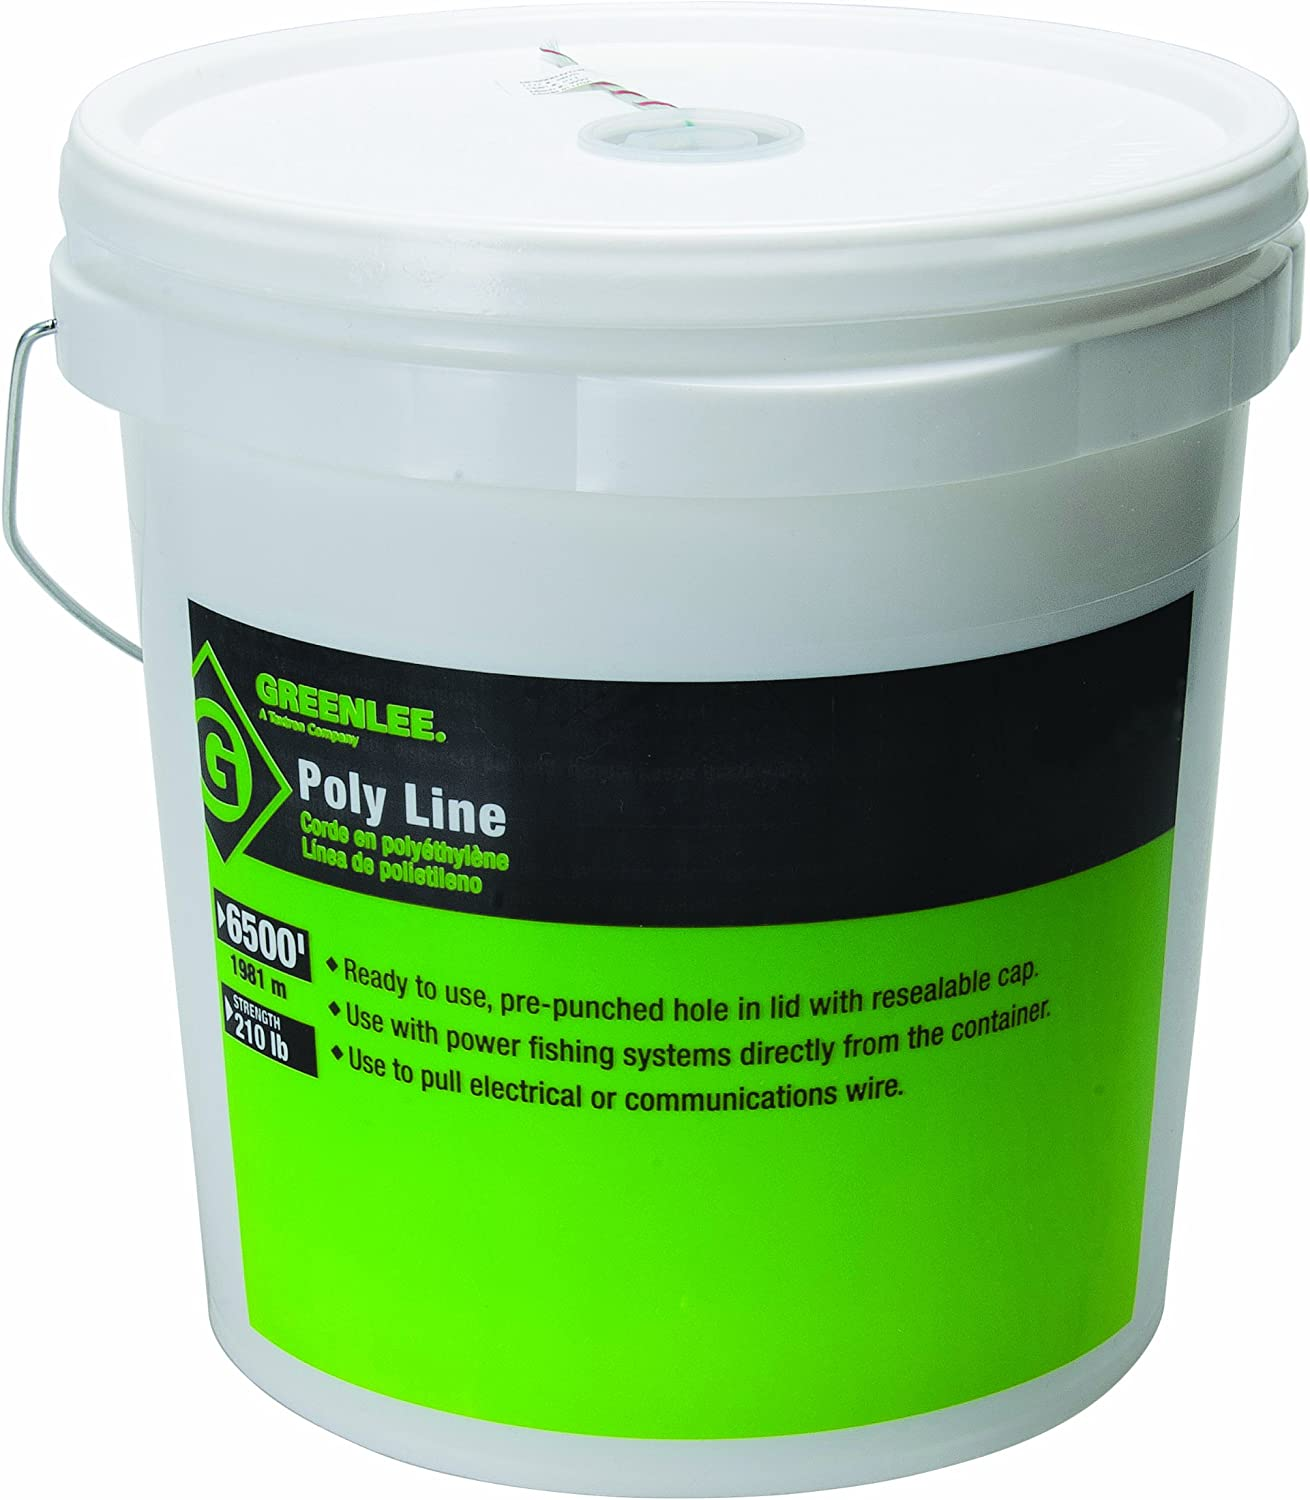 Fishing Line,500 Ft,Poly Line,210 lb GREENLEE 430-500